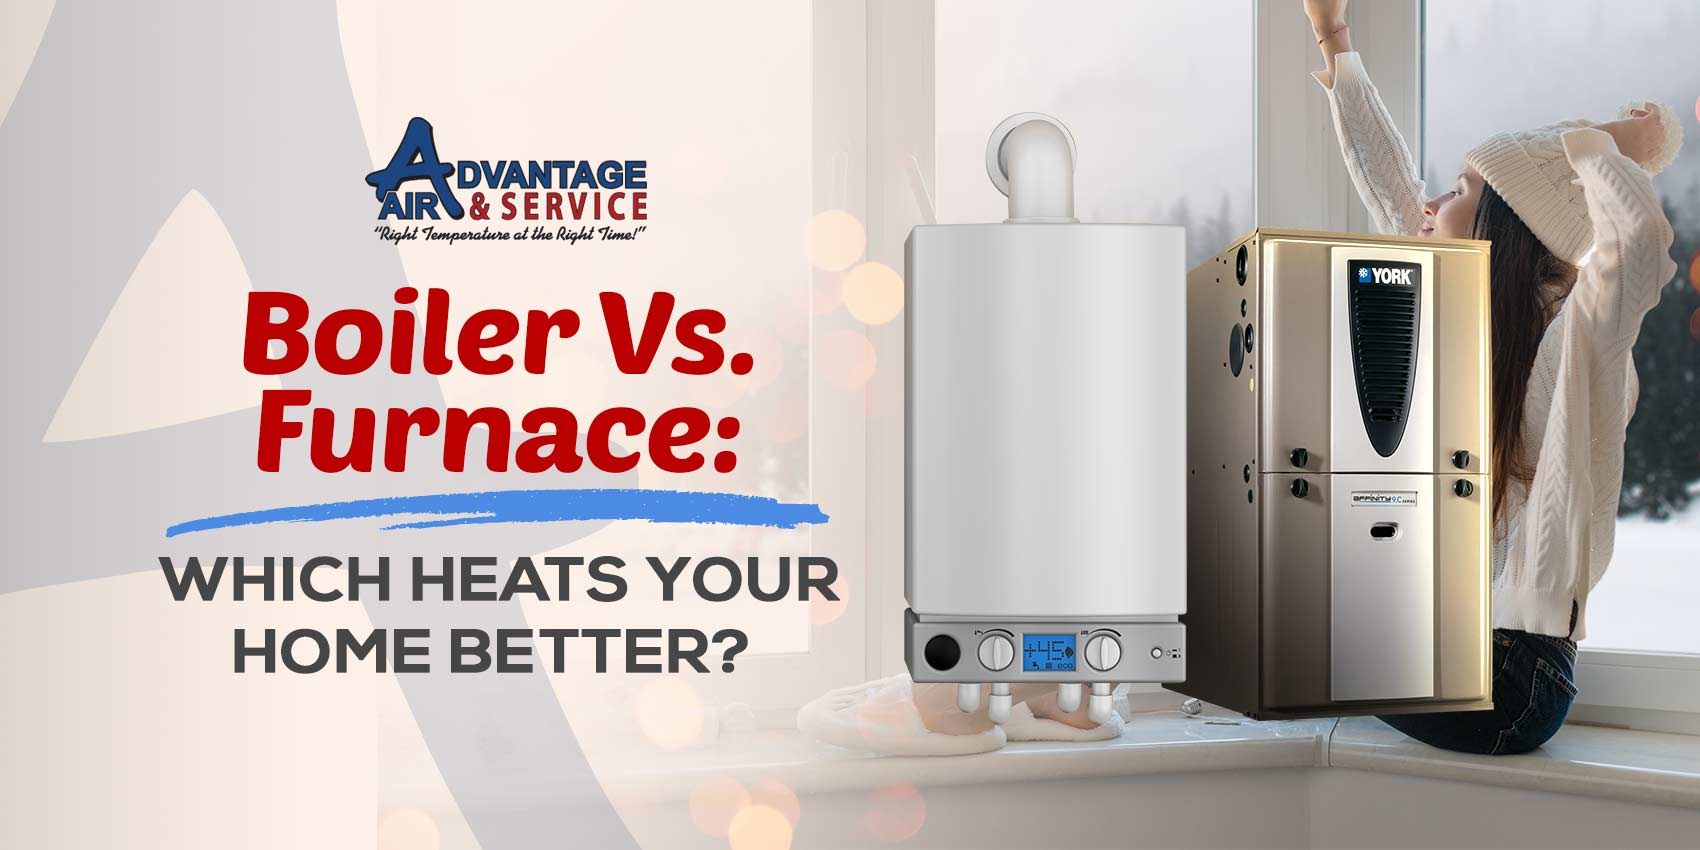 Boiler Vs. Furnace: Which Heats Your Home Better?